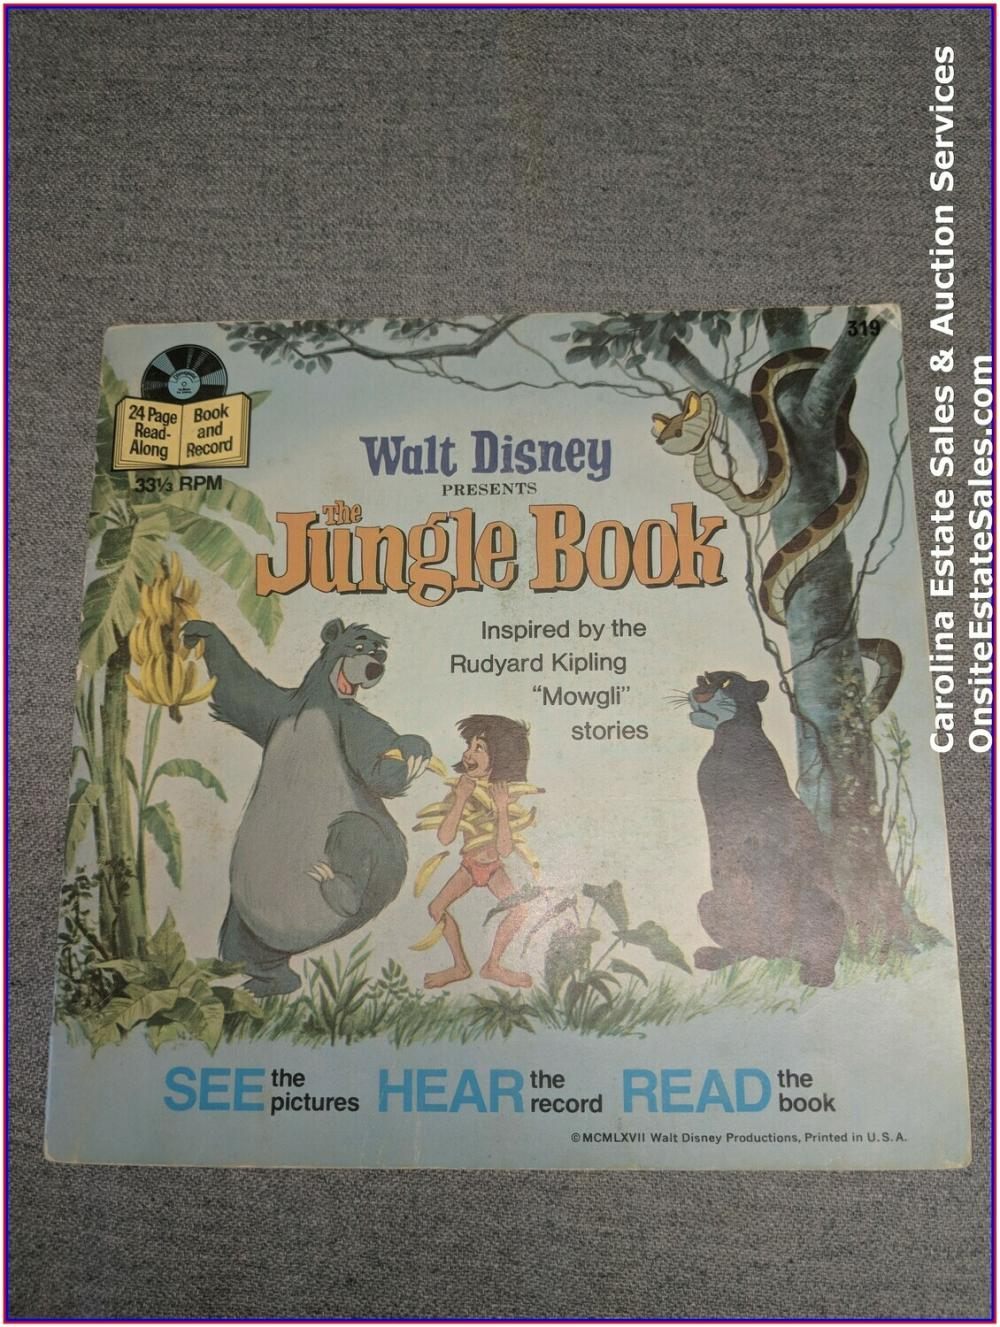 The Jungle Book - Disney Book & Record